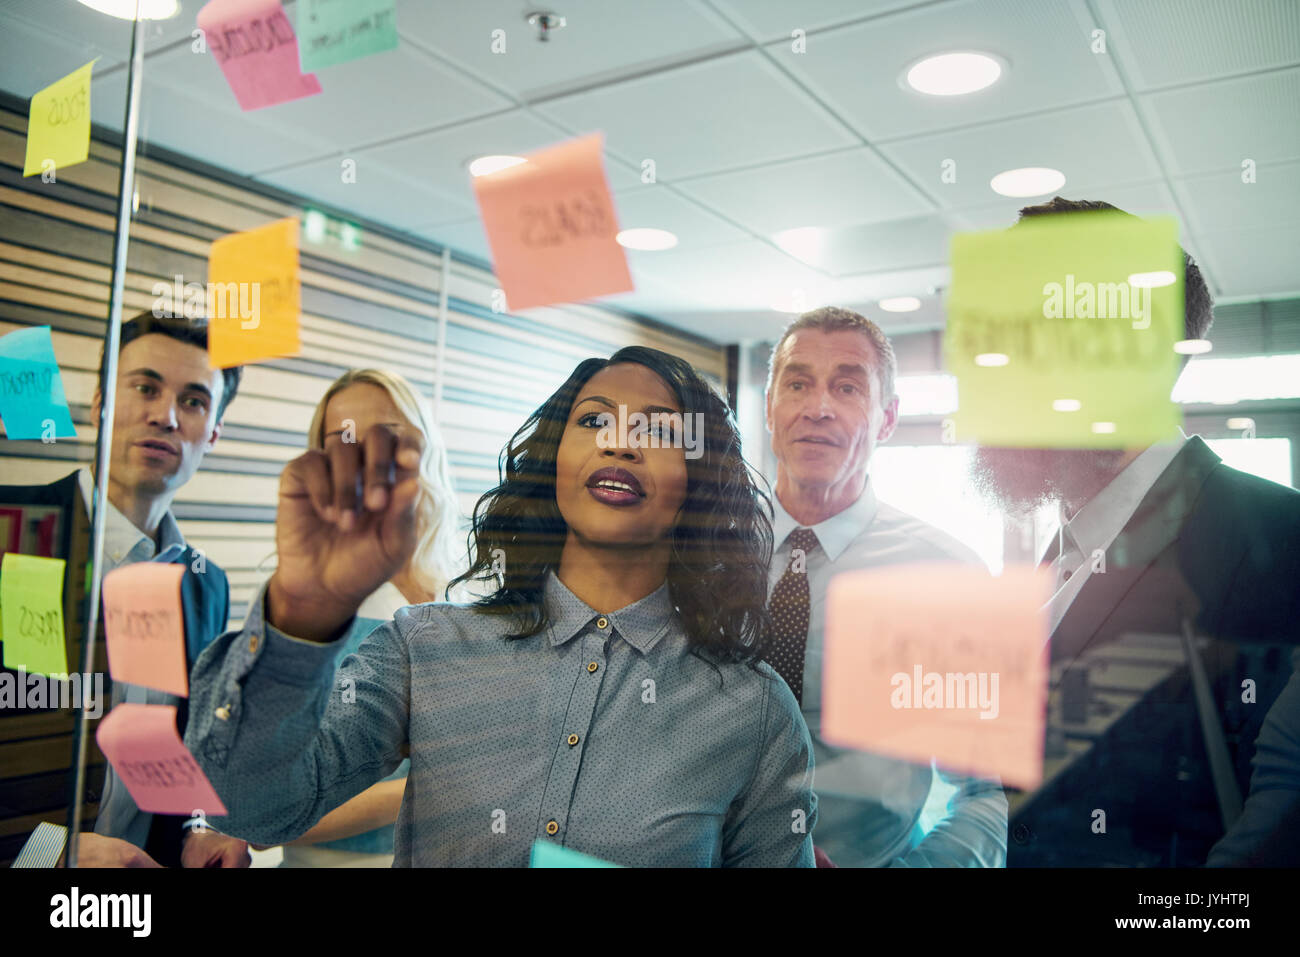 Group of businesspeople brainstorming with woman in foreground, putting sticky note on glass - Stock Image